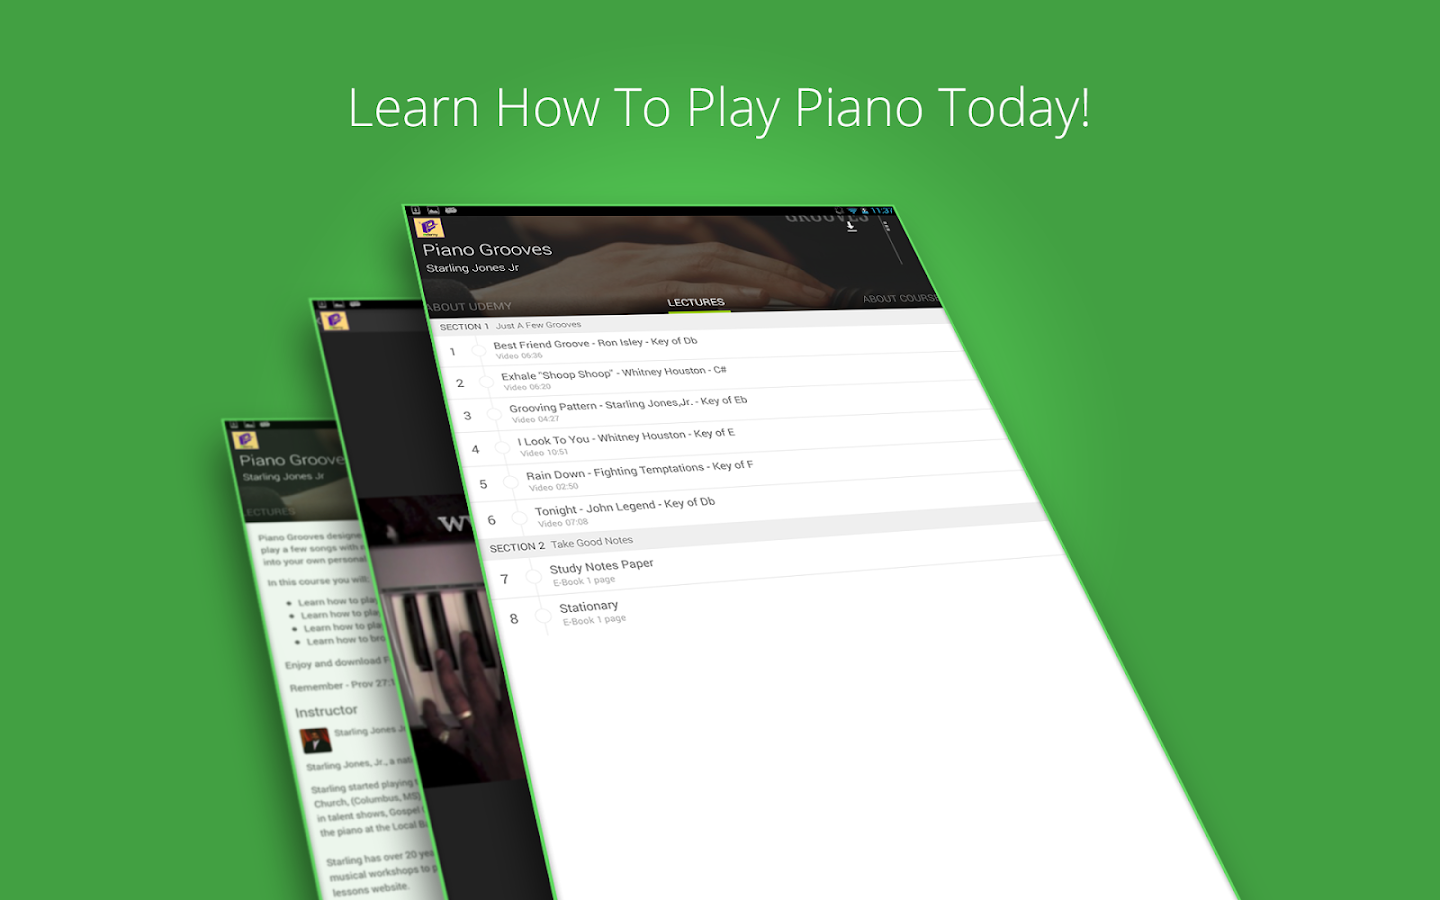 How To Play Piano Grooves 1 9 APK Download - Android